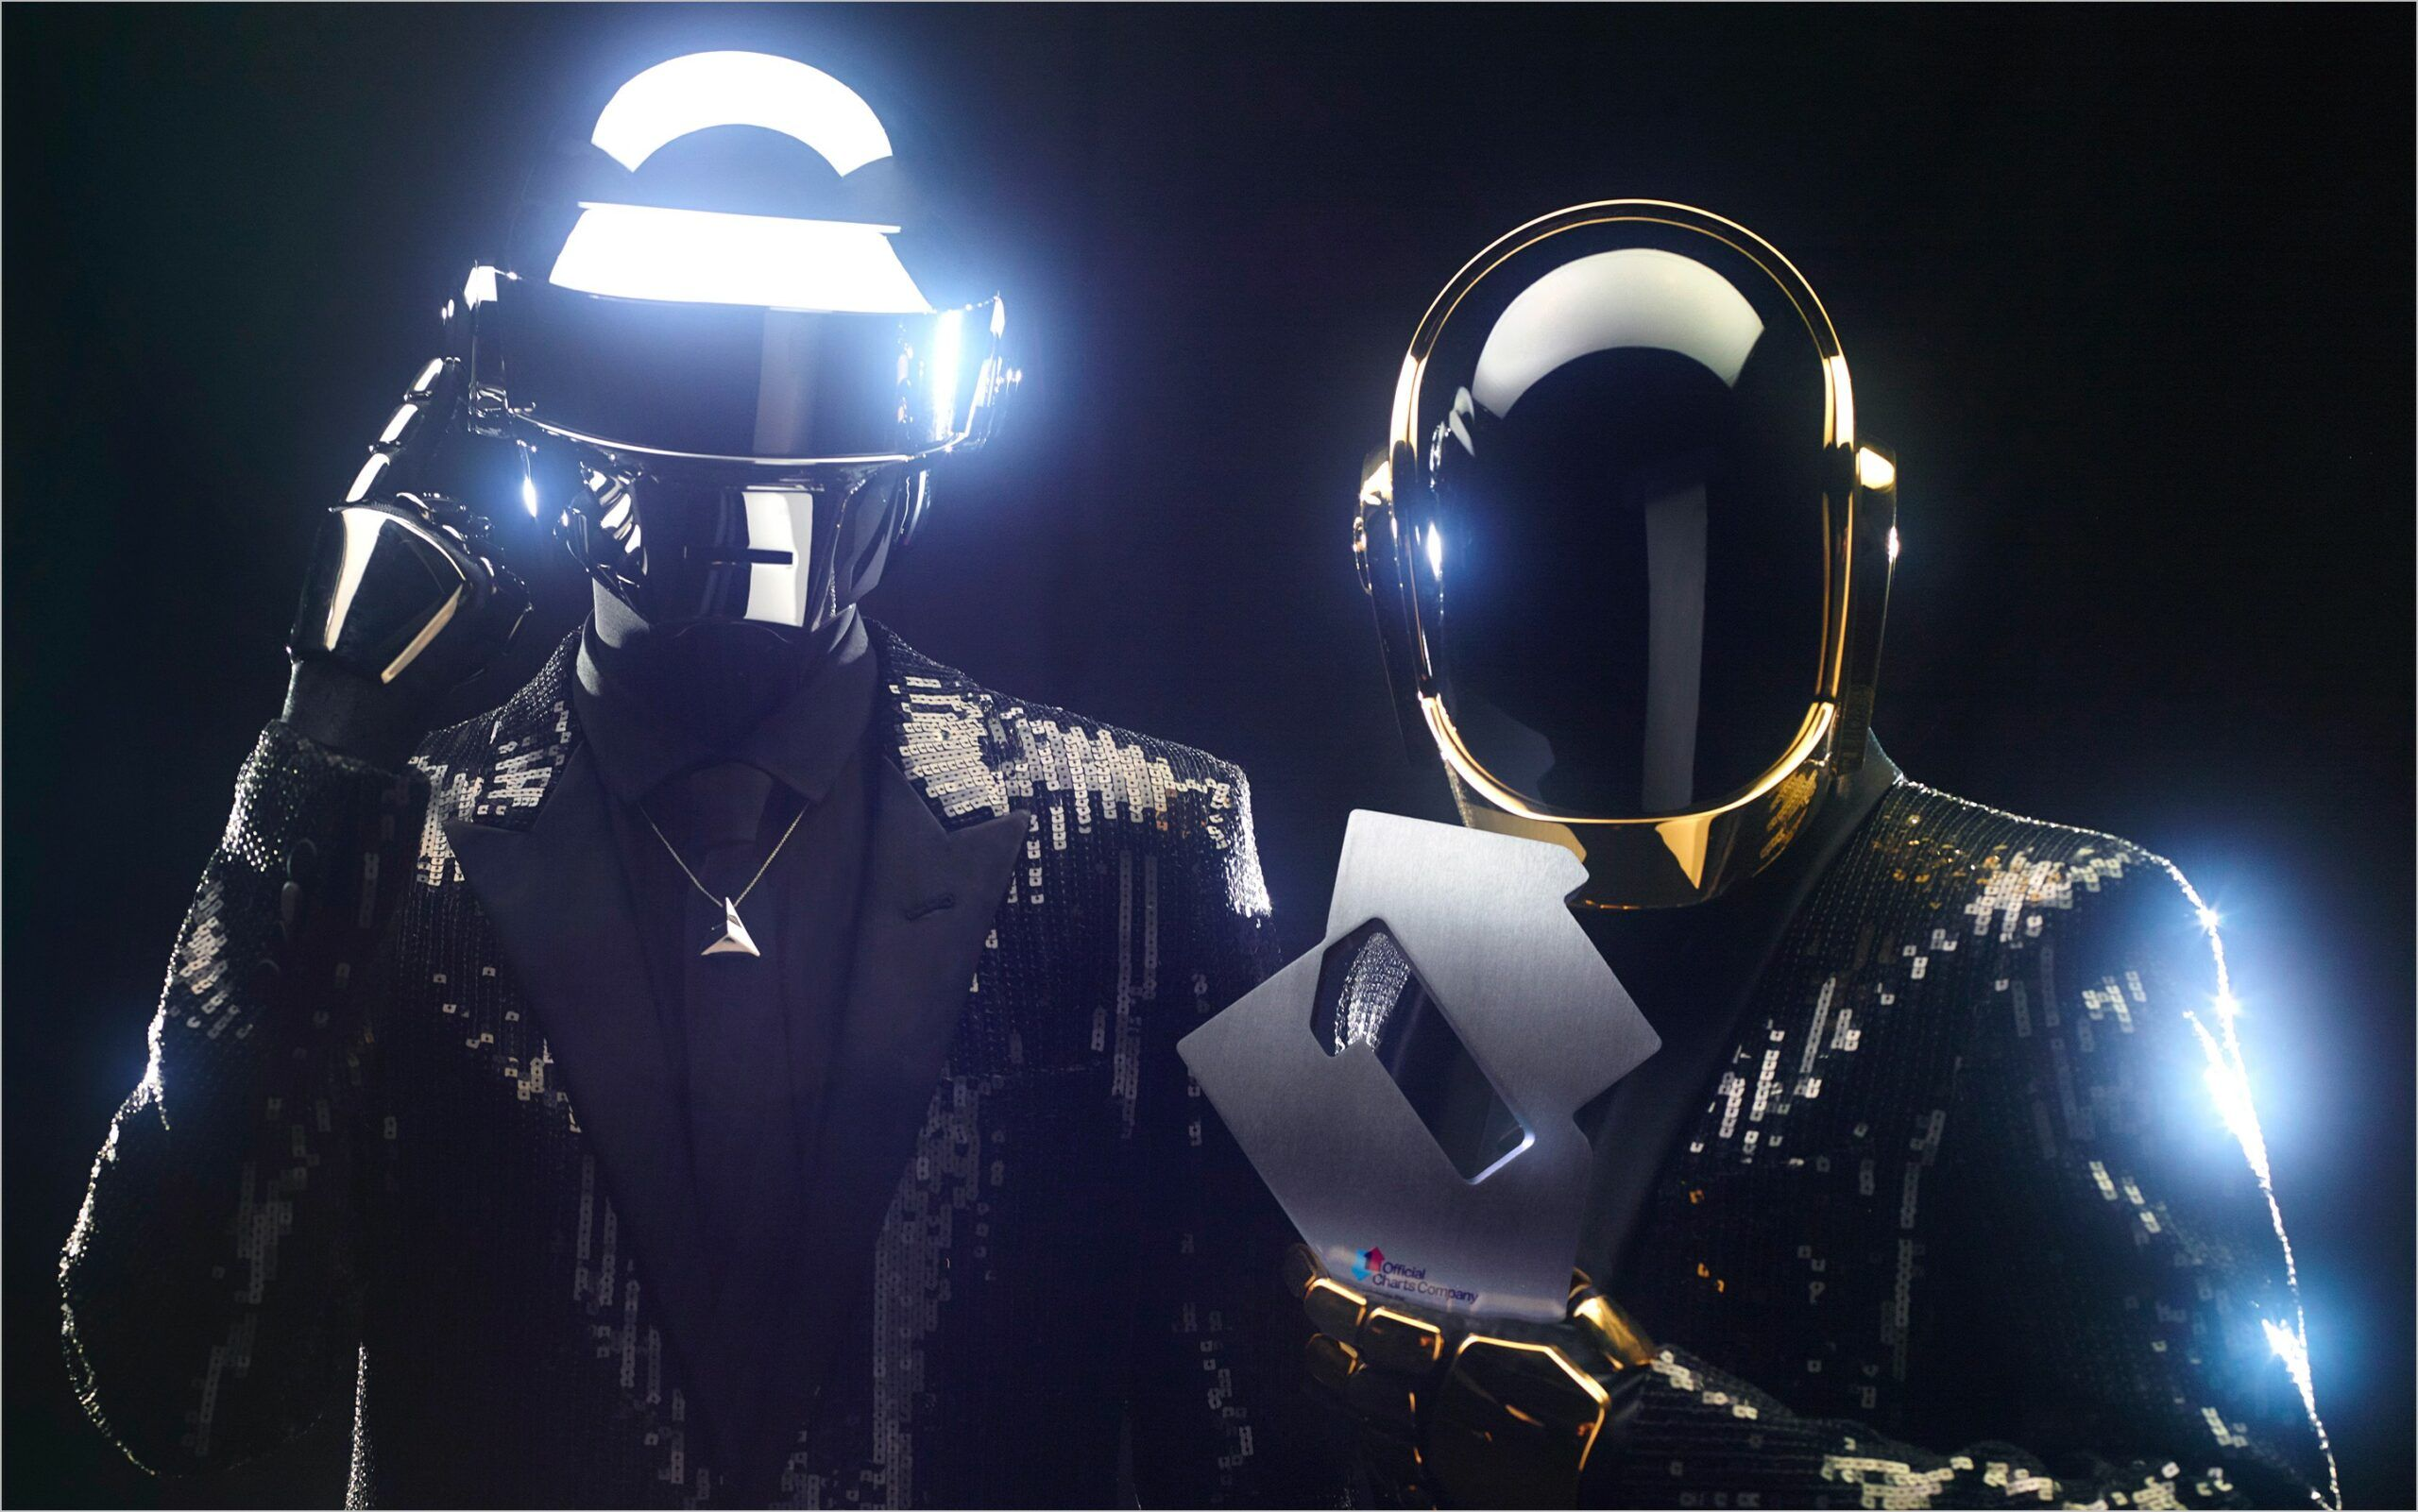 Daft Punk Wallpaper 4k